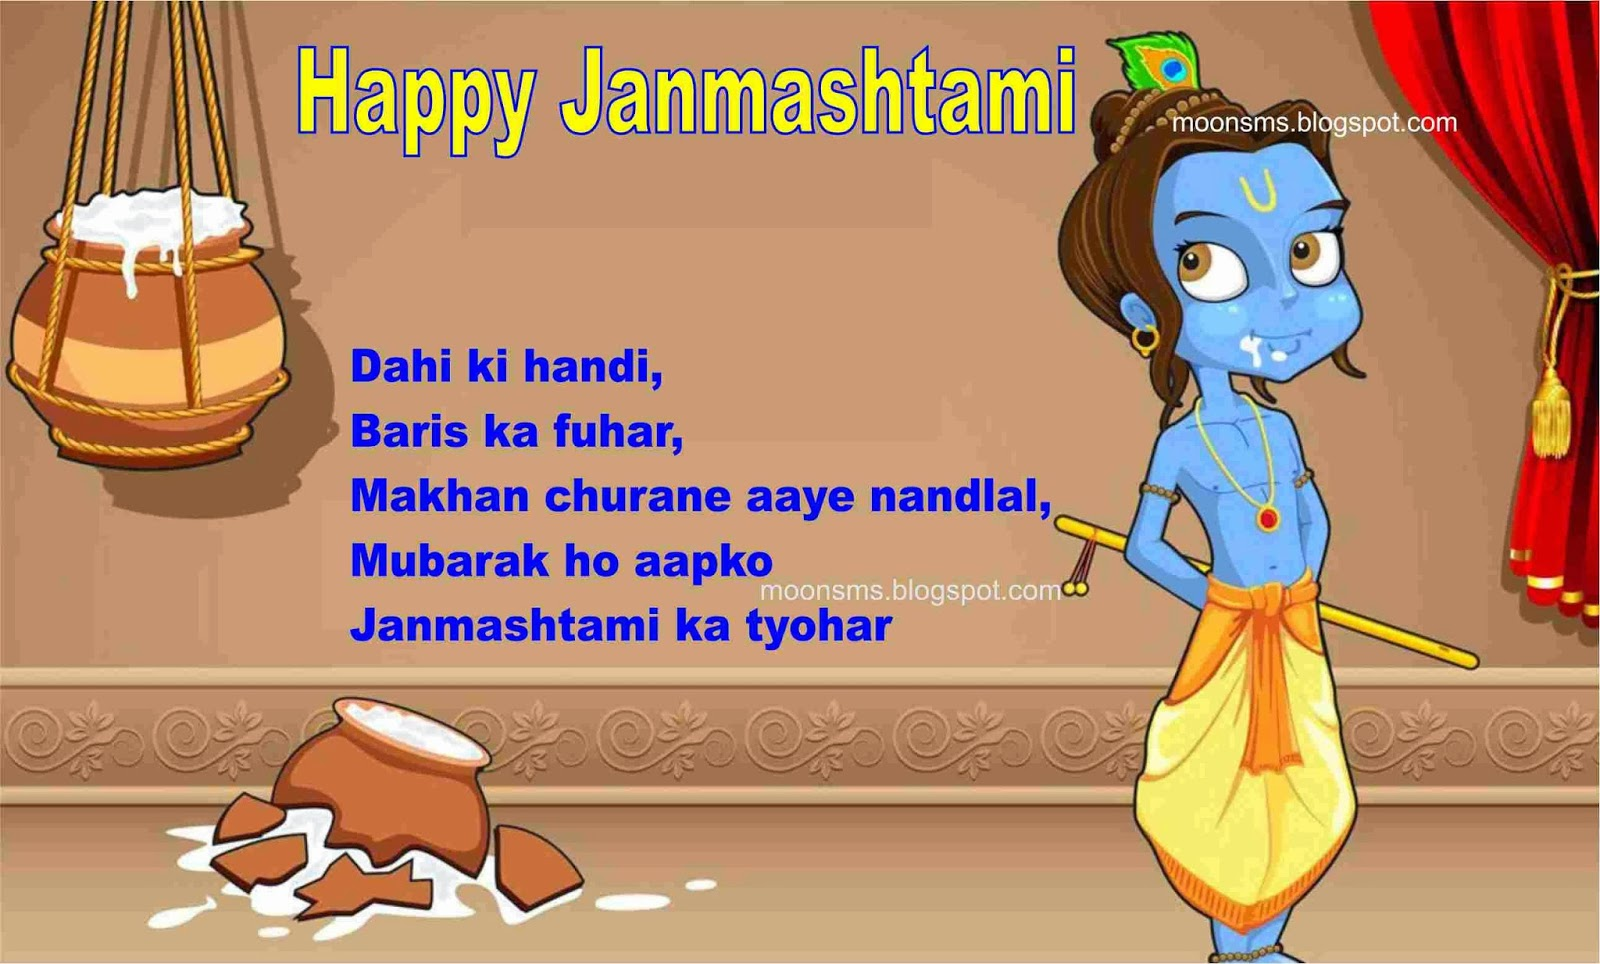 शुभ जन्माष्टमी गोकुळाष्टमी Happy Krishna Janmashtami Gokulashtami dahi handi festival 2014 sms text message wishes Quotes Greetings in English Hindi with Graphic scraps Gif animated animation Images picture photo HD wallpaper